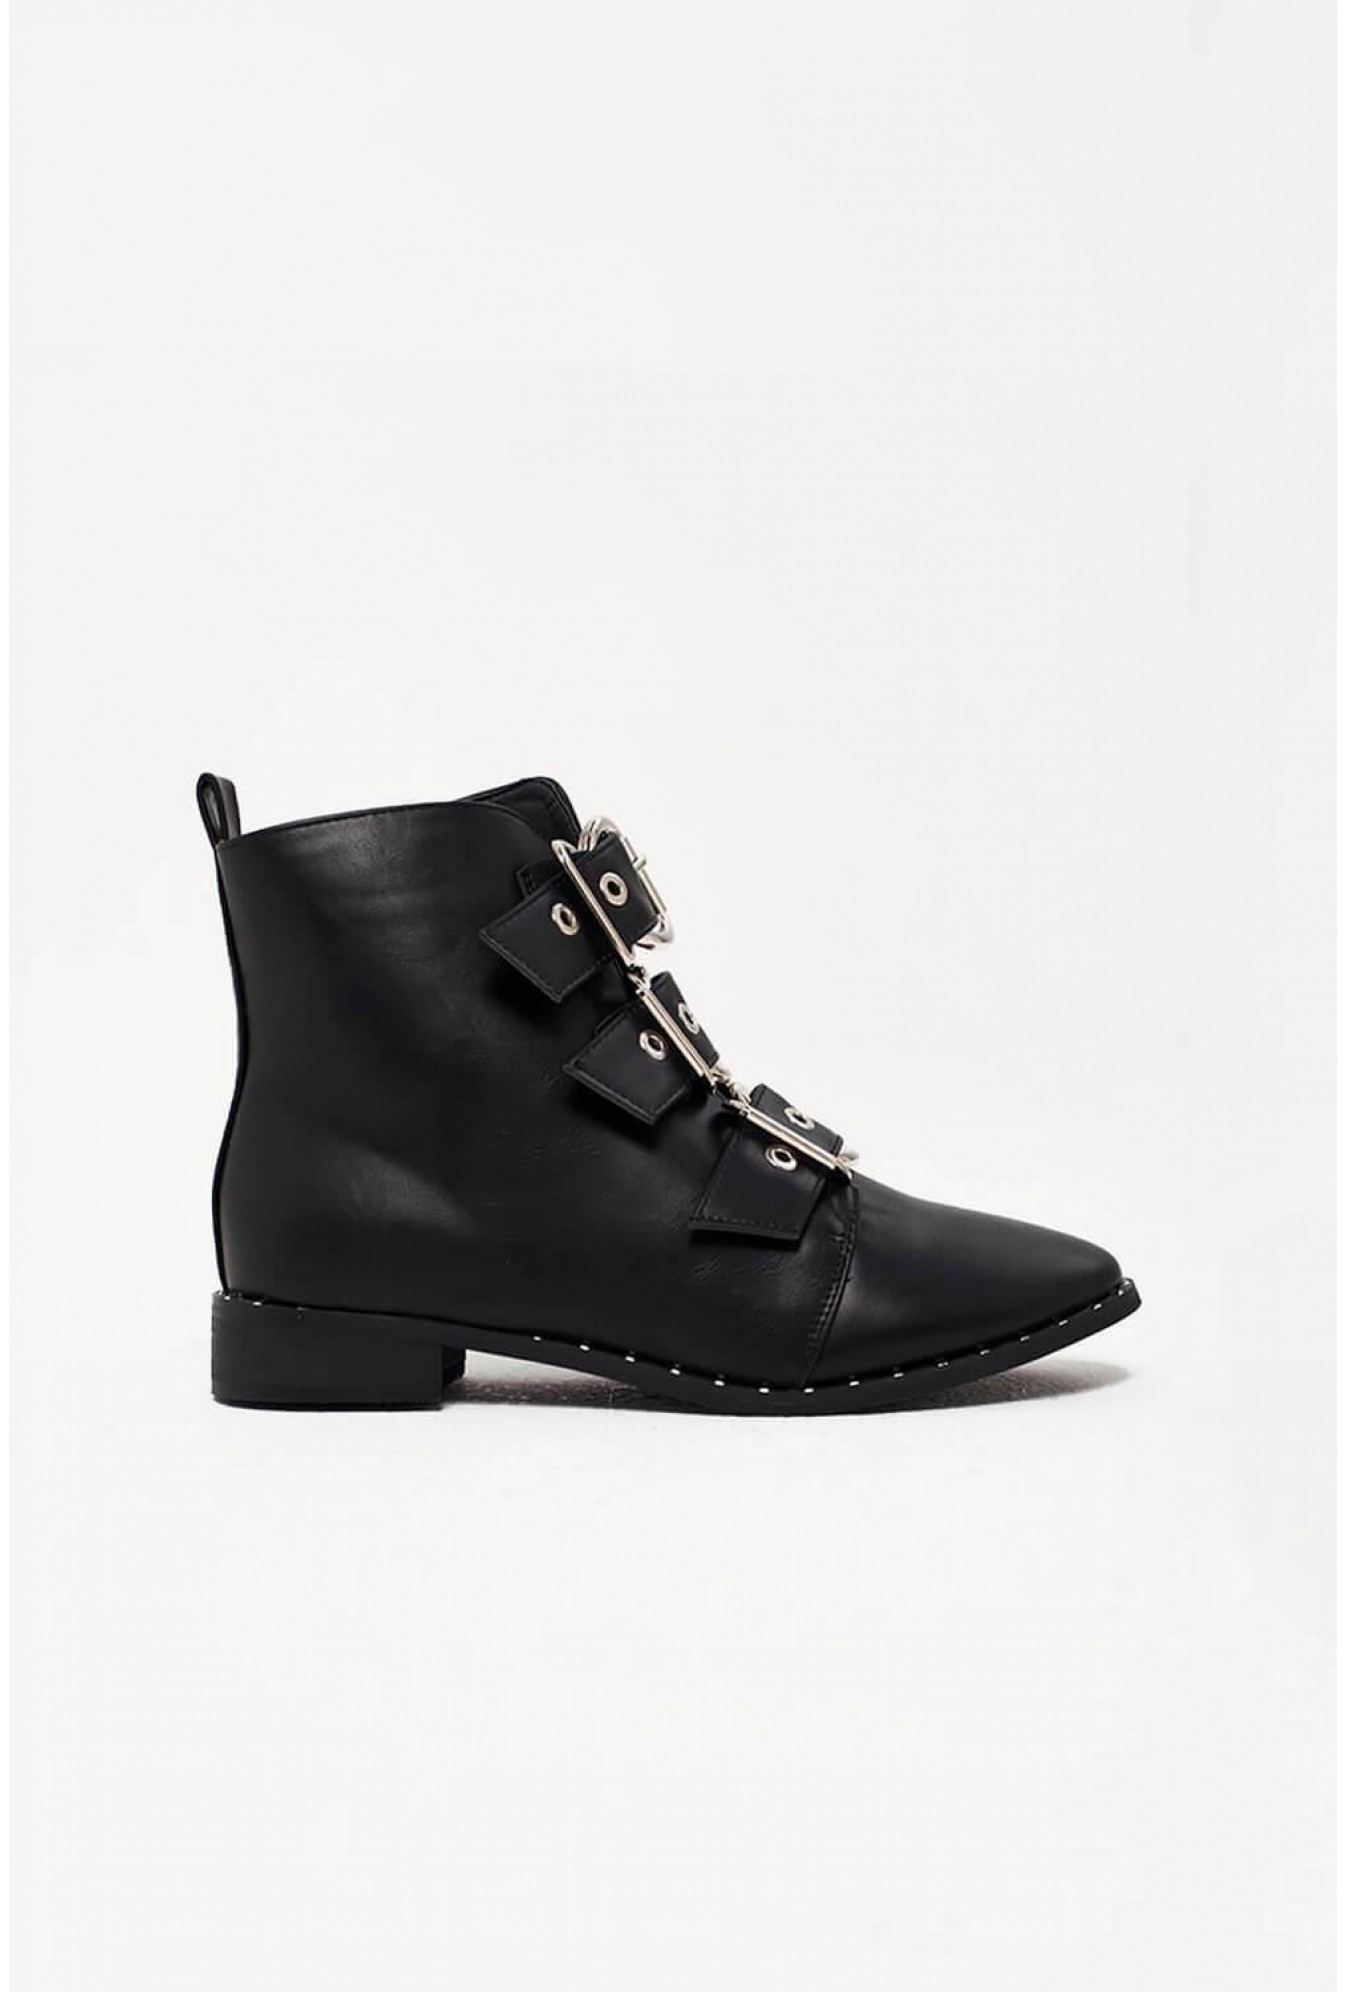 19936fcb302bc No Doubt Tali Biker Boots with Buckle Detail in Black | iCLOTHING